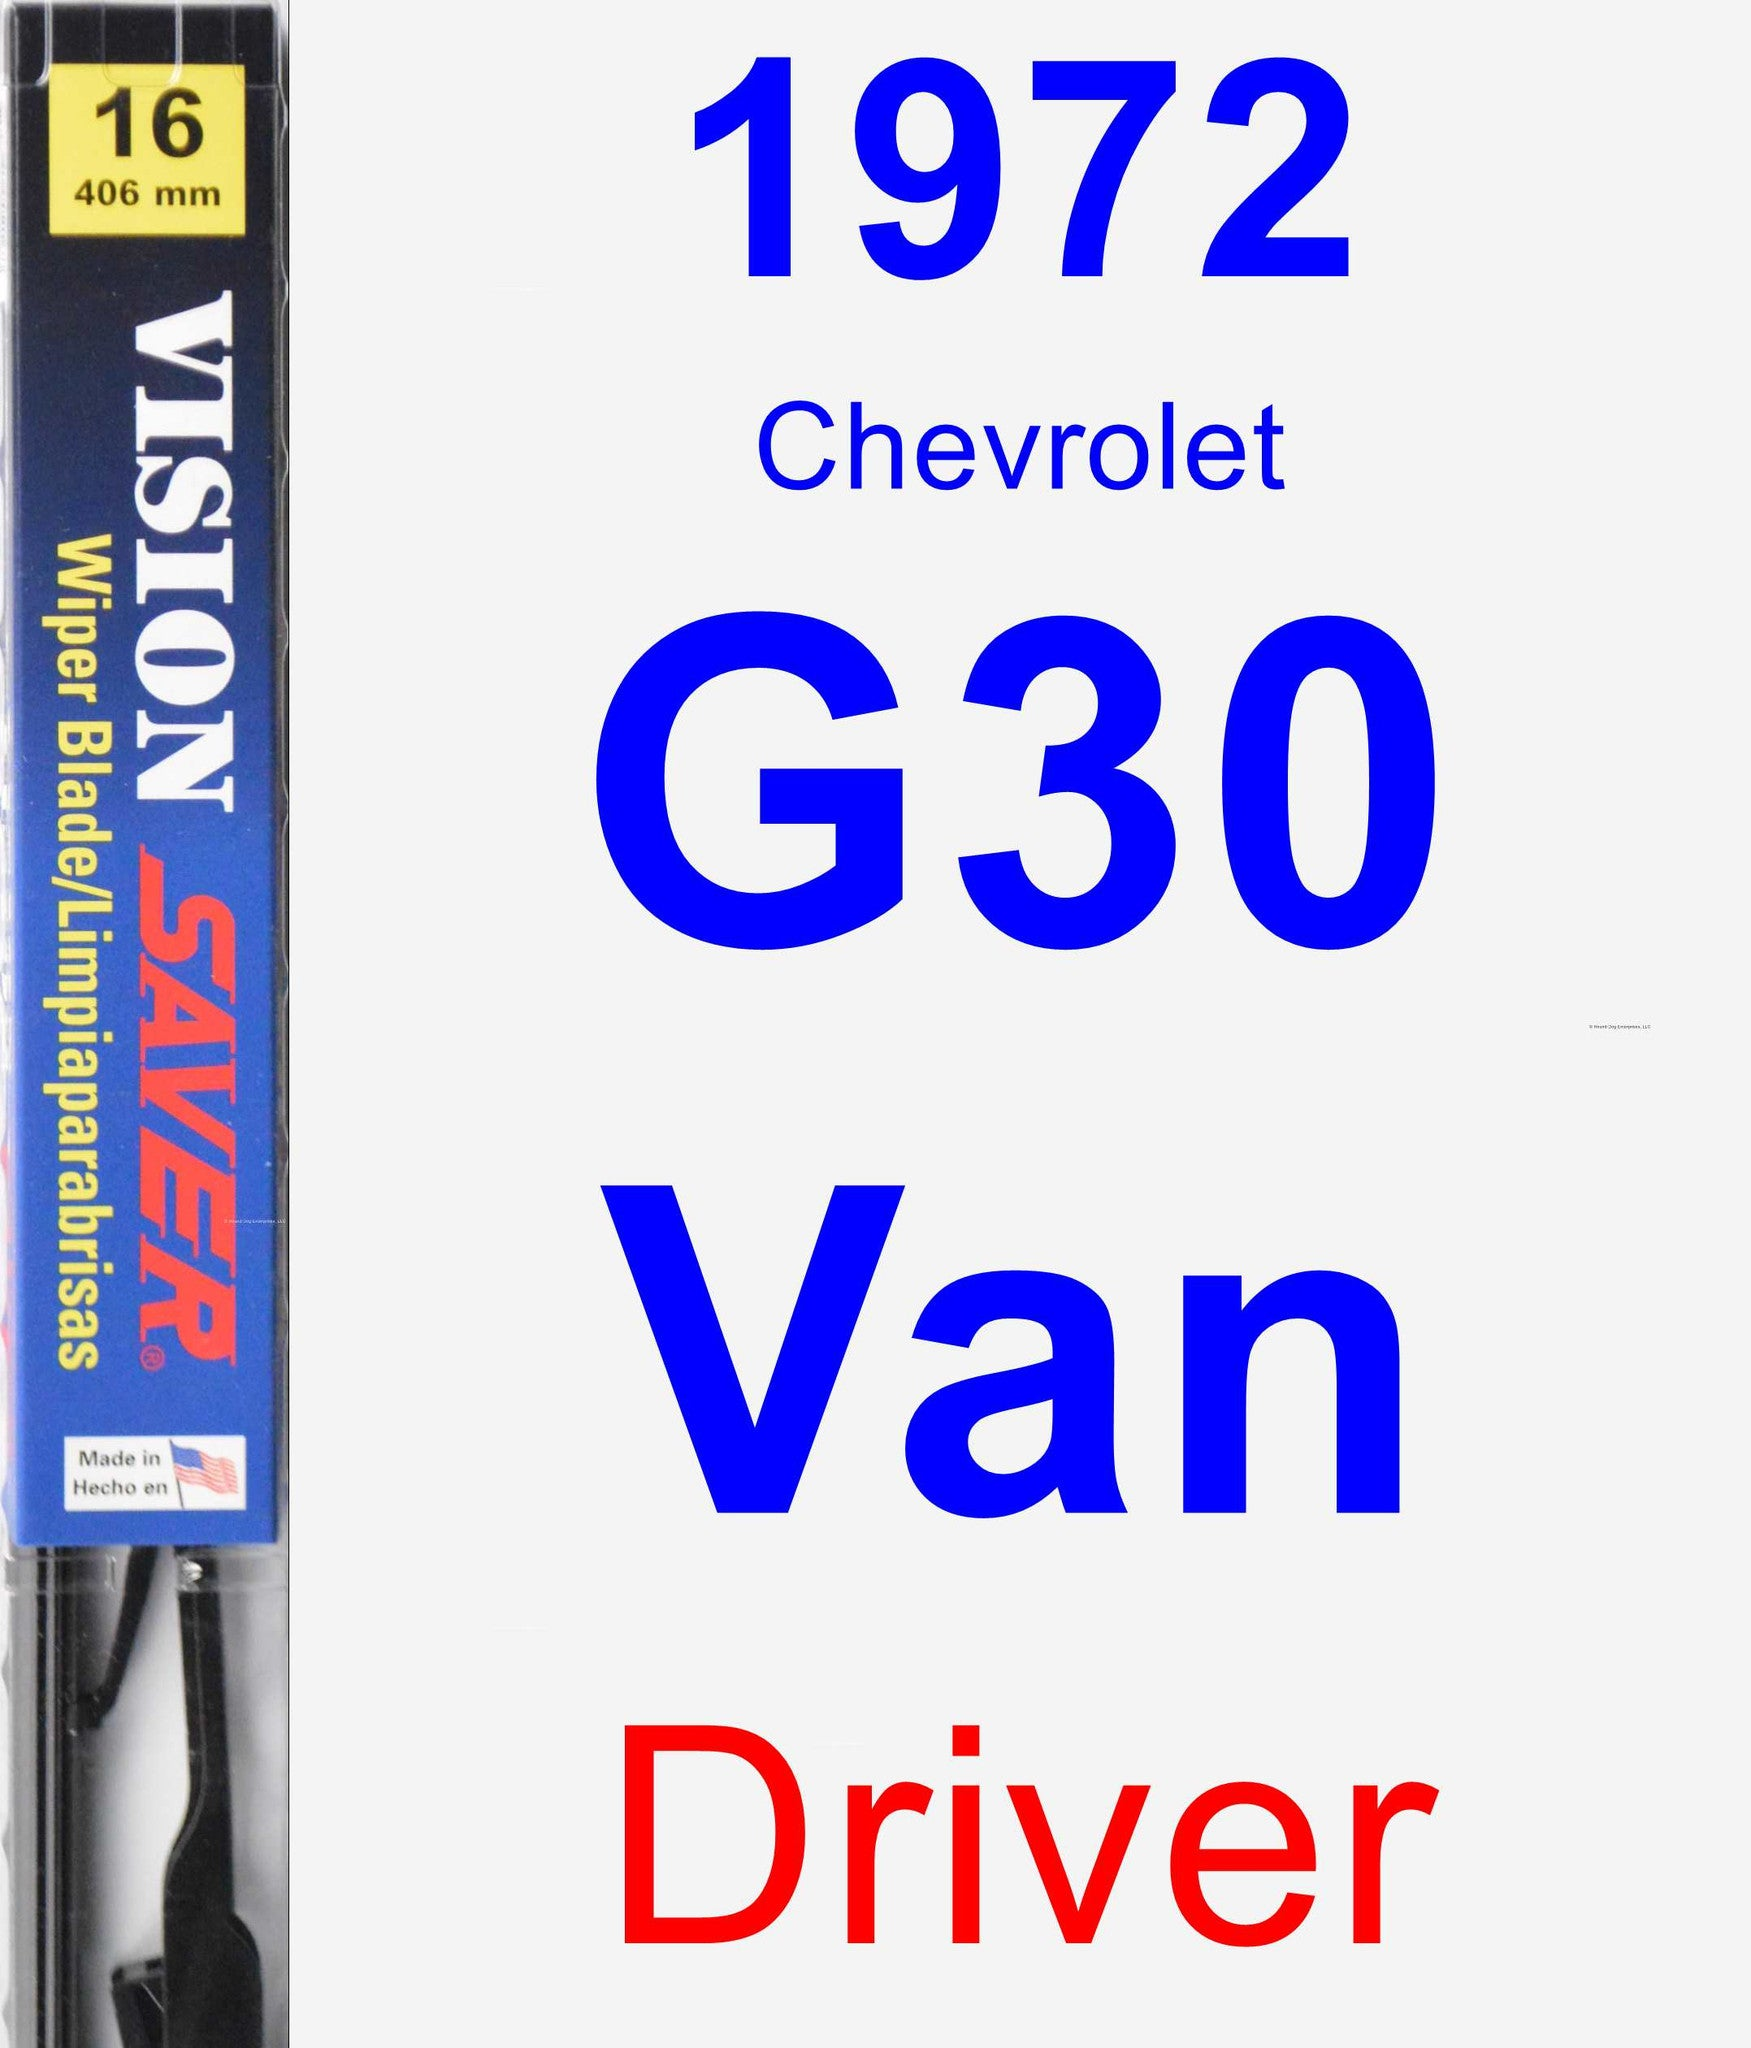 Driver Wiper Blade for 1972 Chevrolet G30 Van - Vision Saver